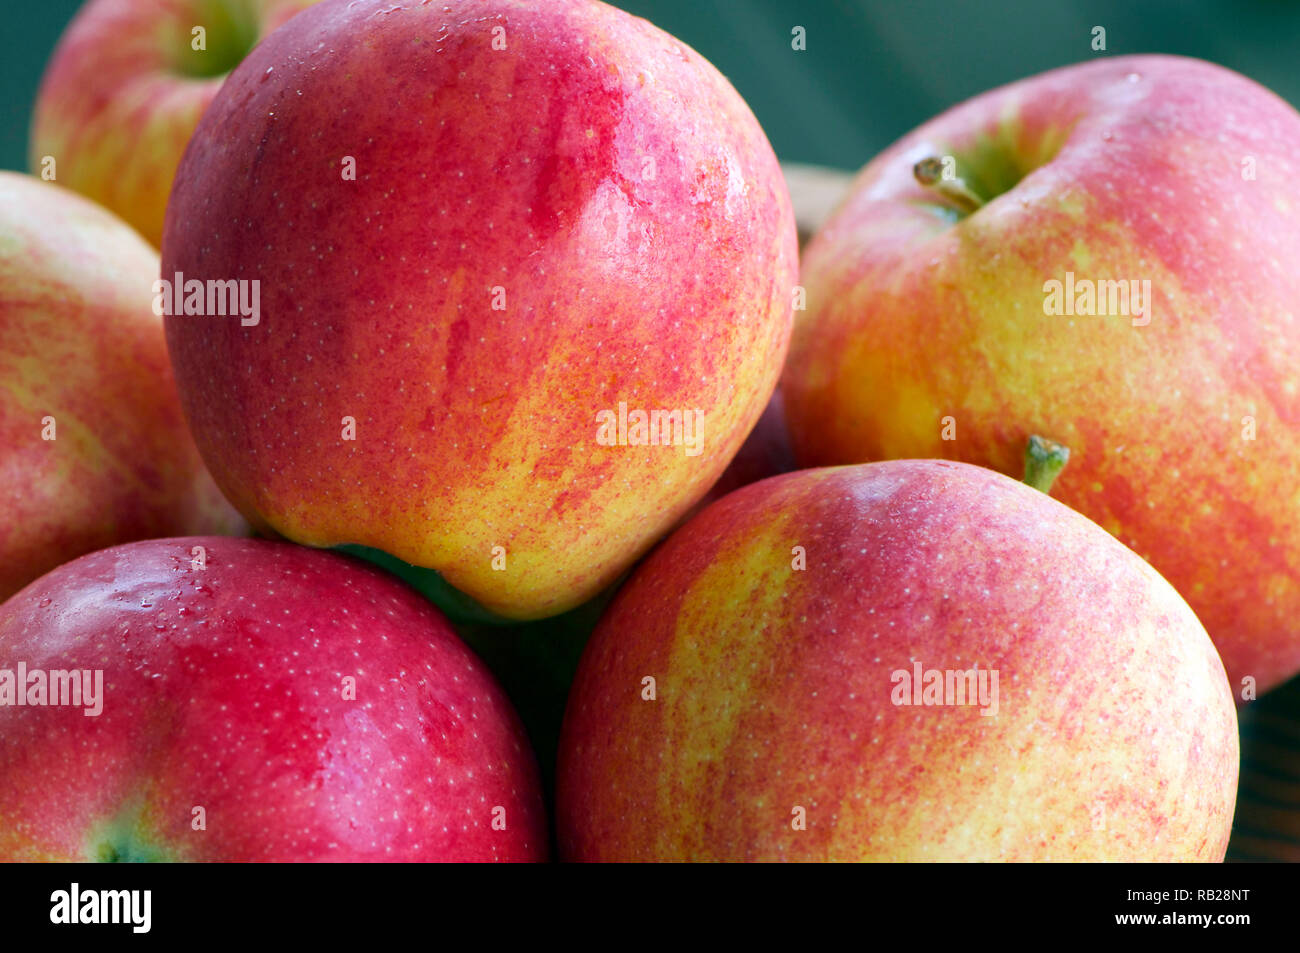 Closeup of freshly washed red and green organic apples (Malus domestica `Gala`) - Stock Image